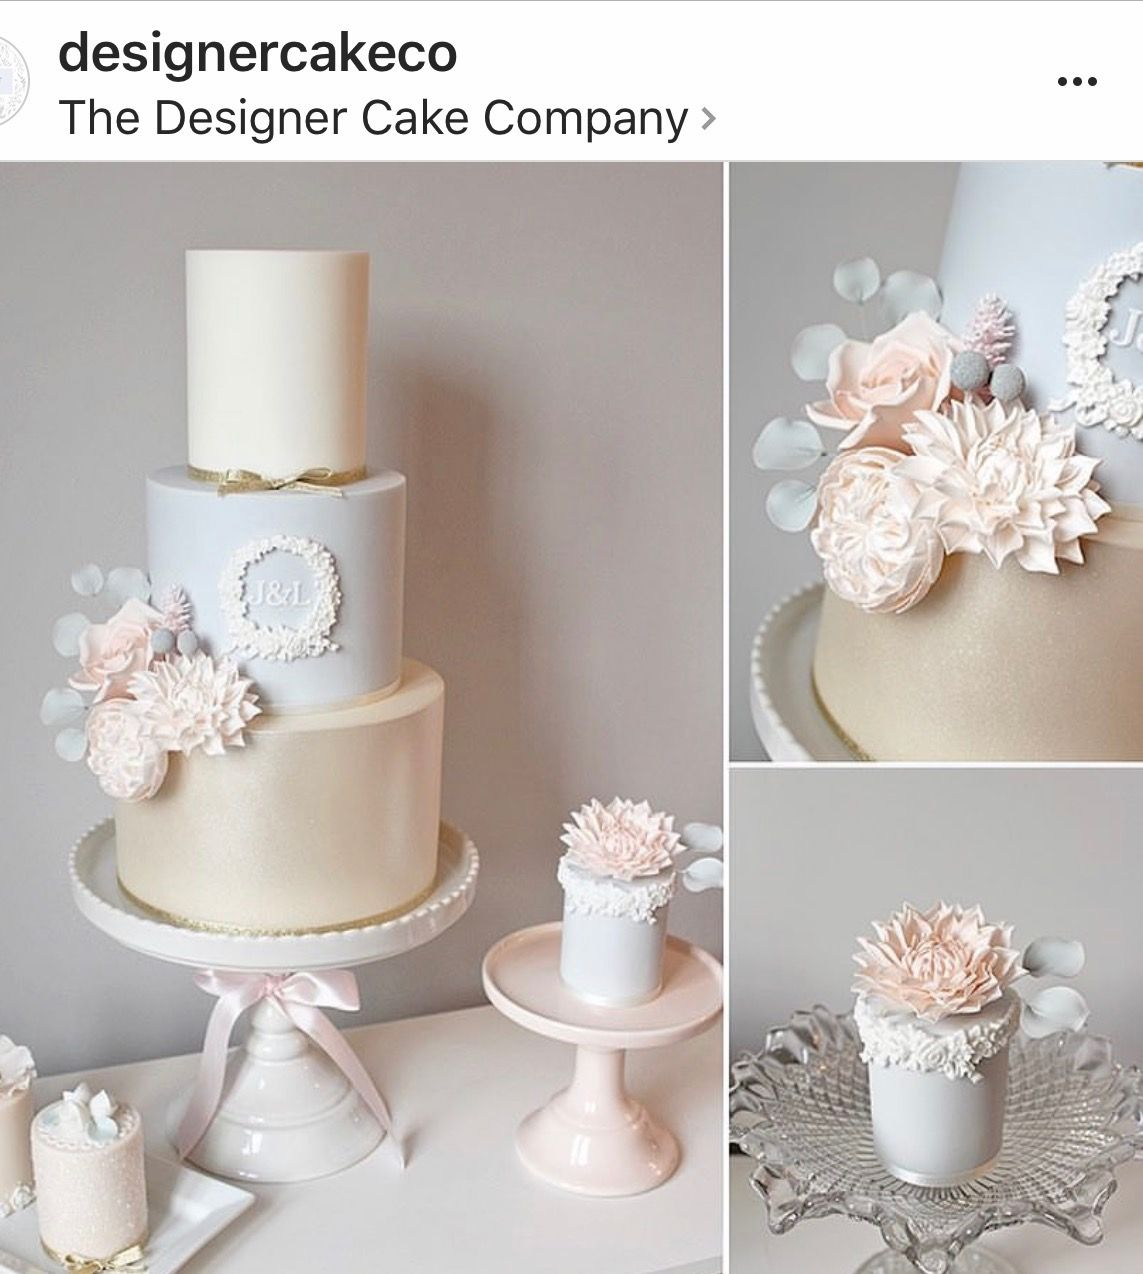 Pin by simone angher on amazing cakes pinterest amazing cakes